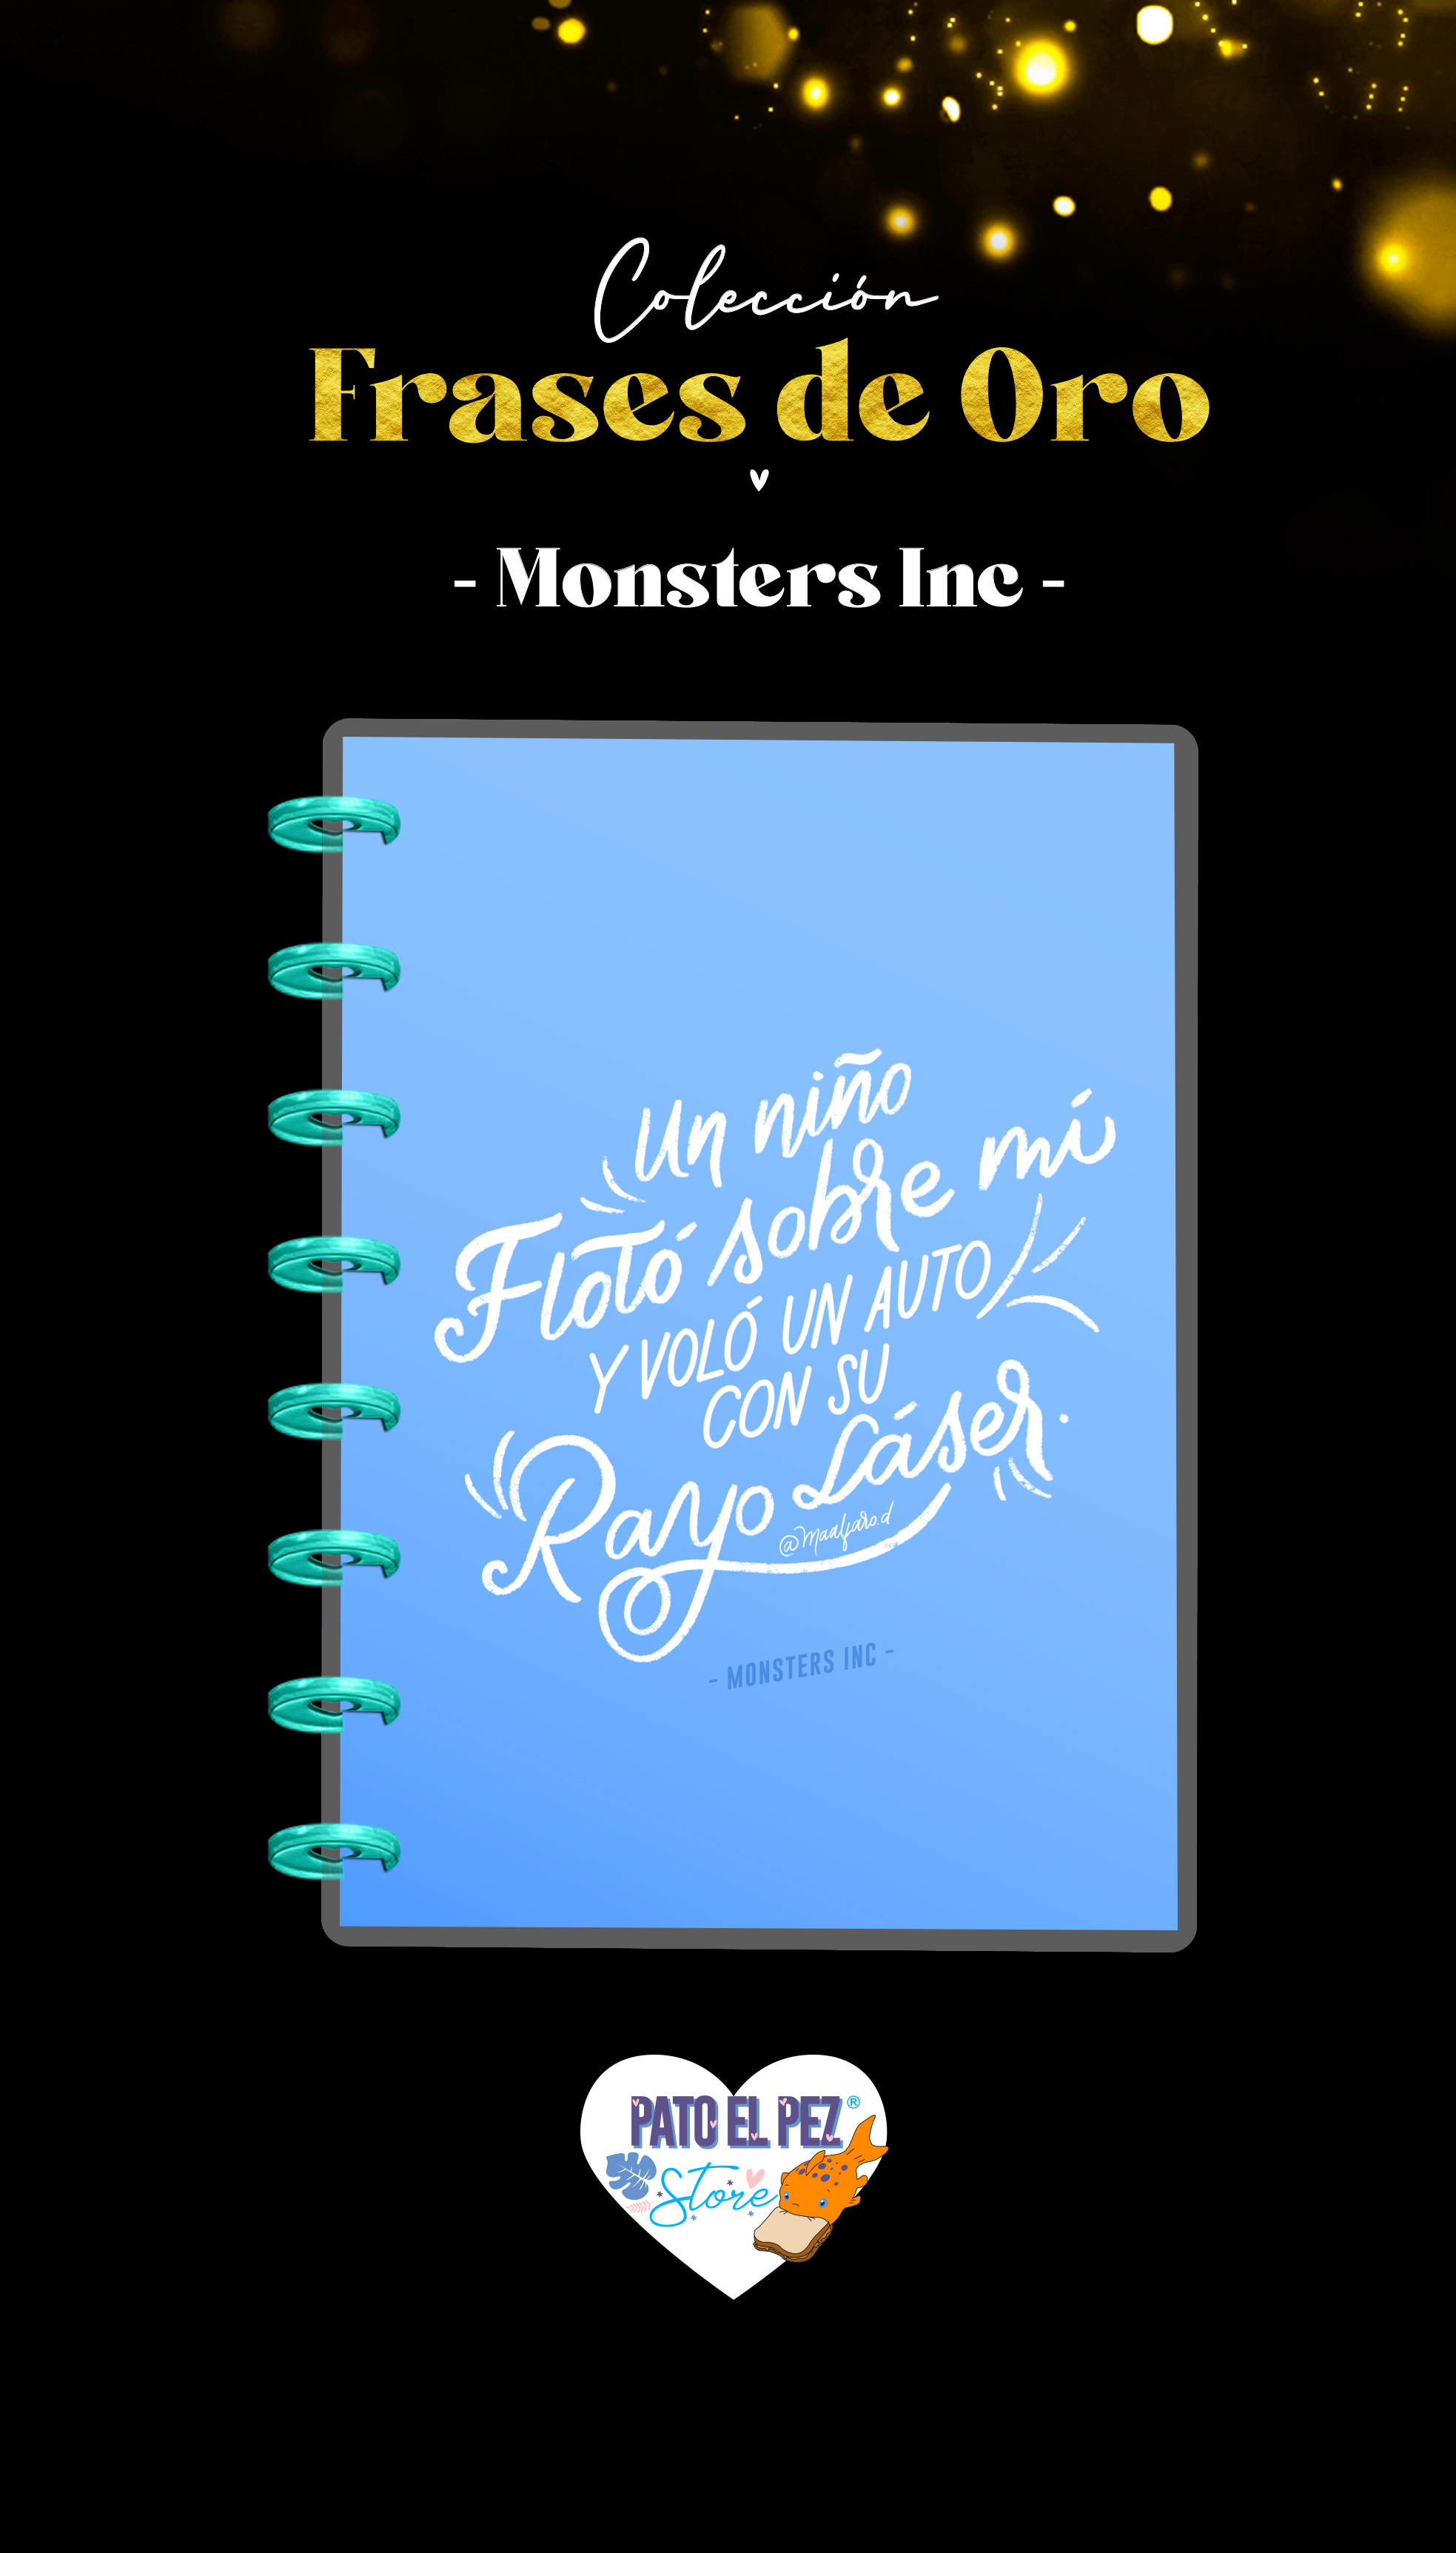 CUADERNO DE DISCO MONSTER INC